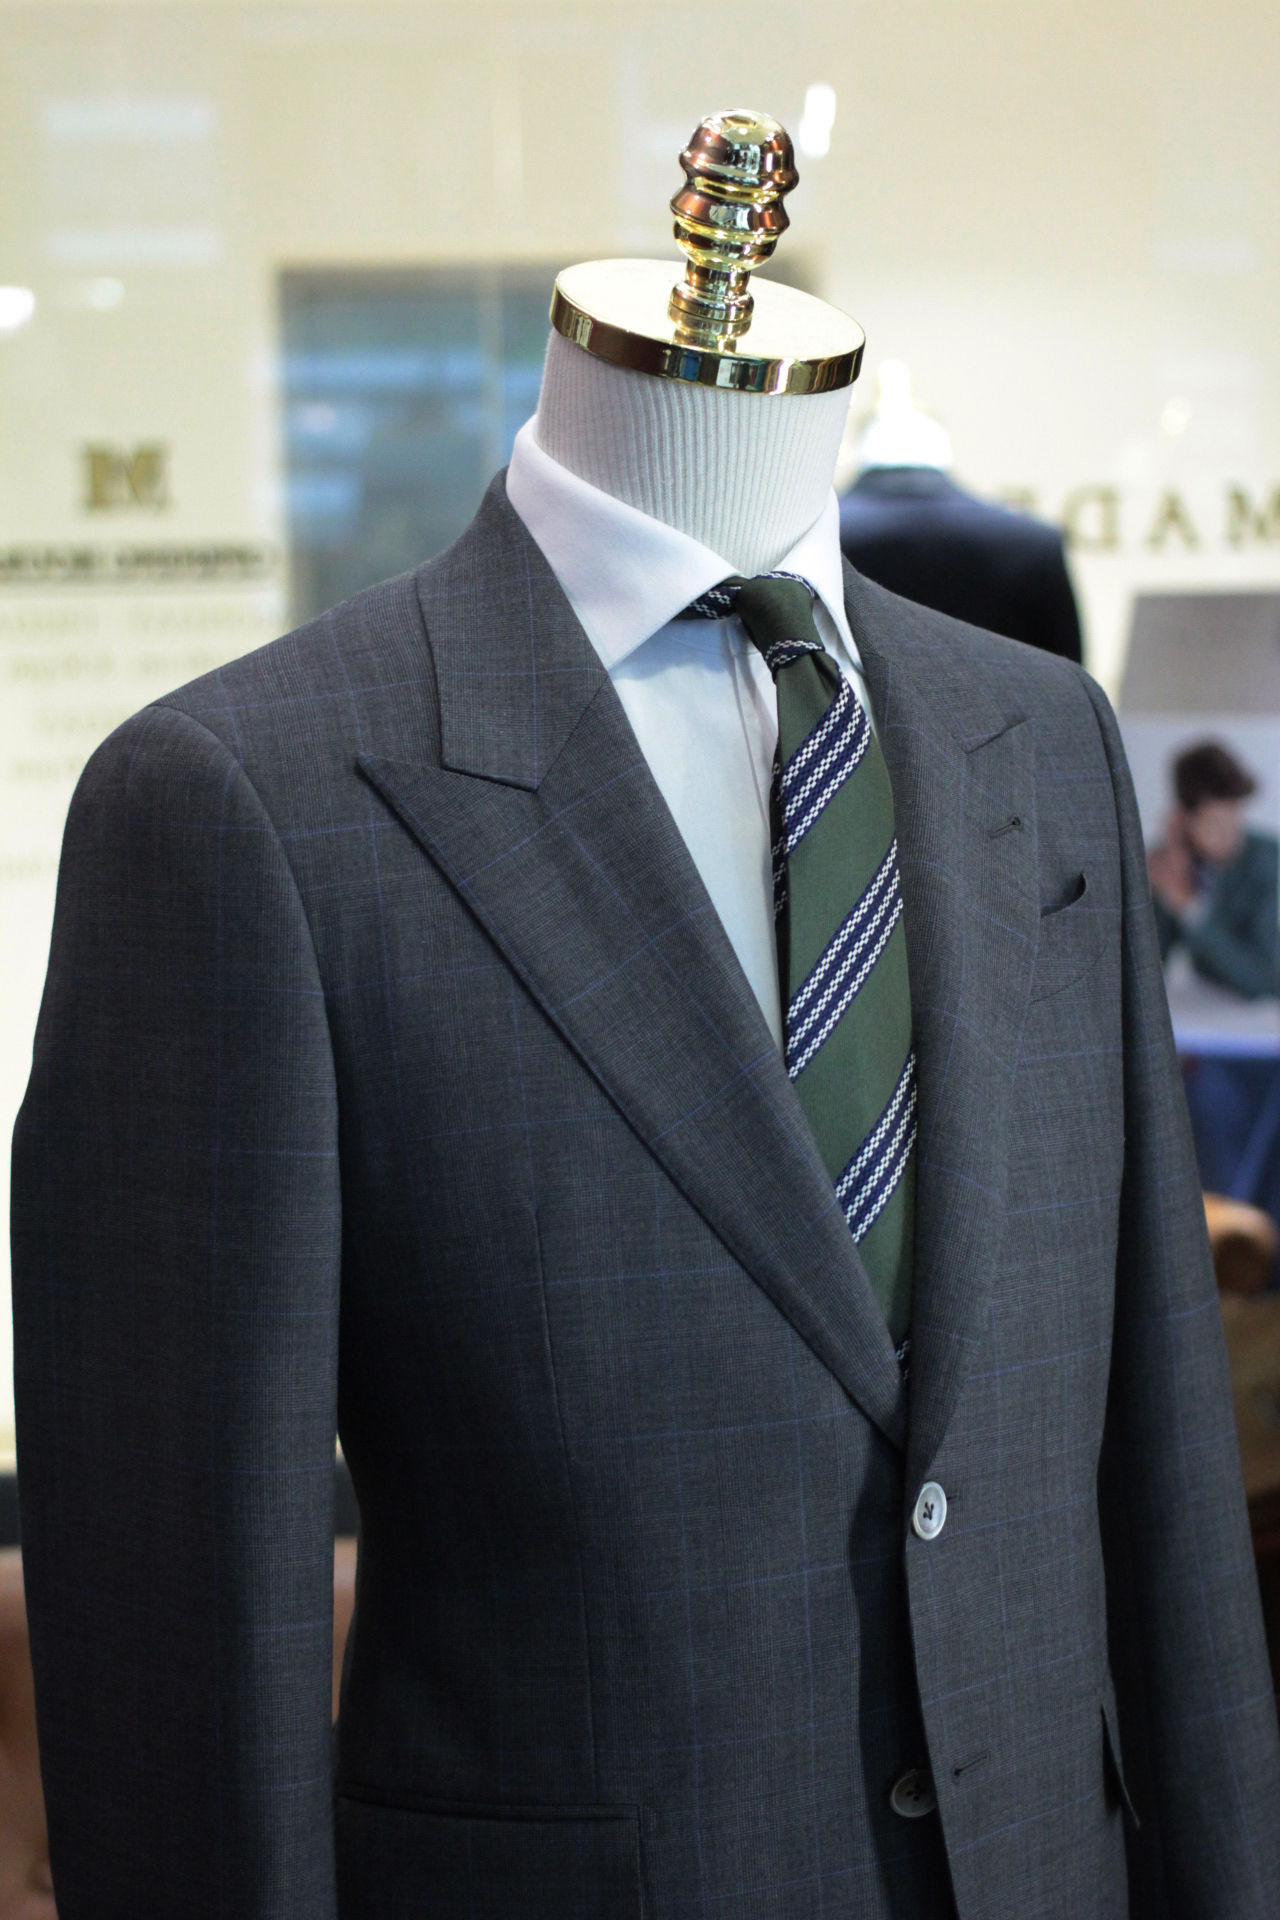 Front New York | DRAGO S.P.A | Vantage Super 130s | Tailor Made Suits Singapore Prince of Wales Checks.JPG